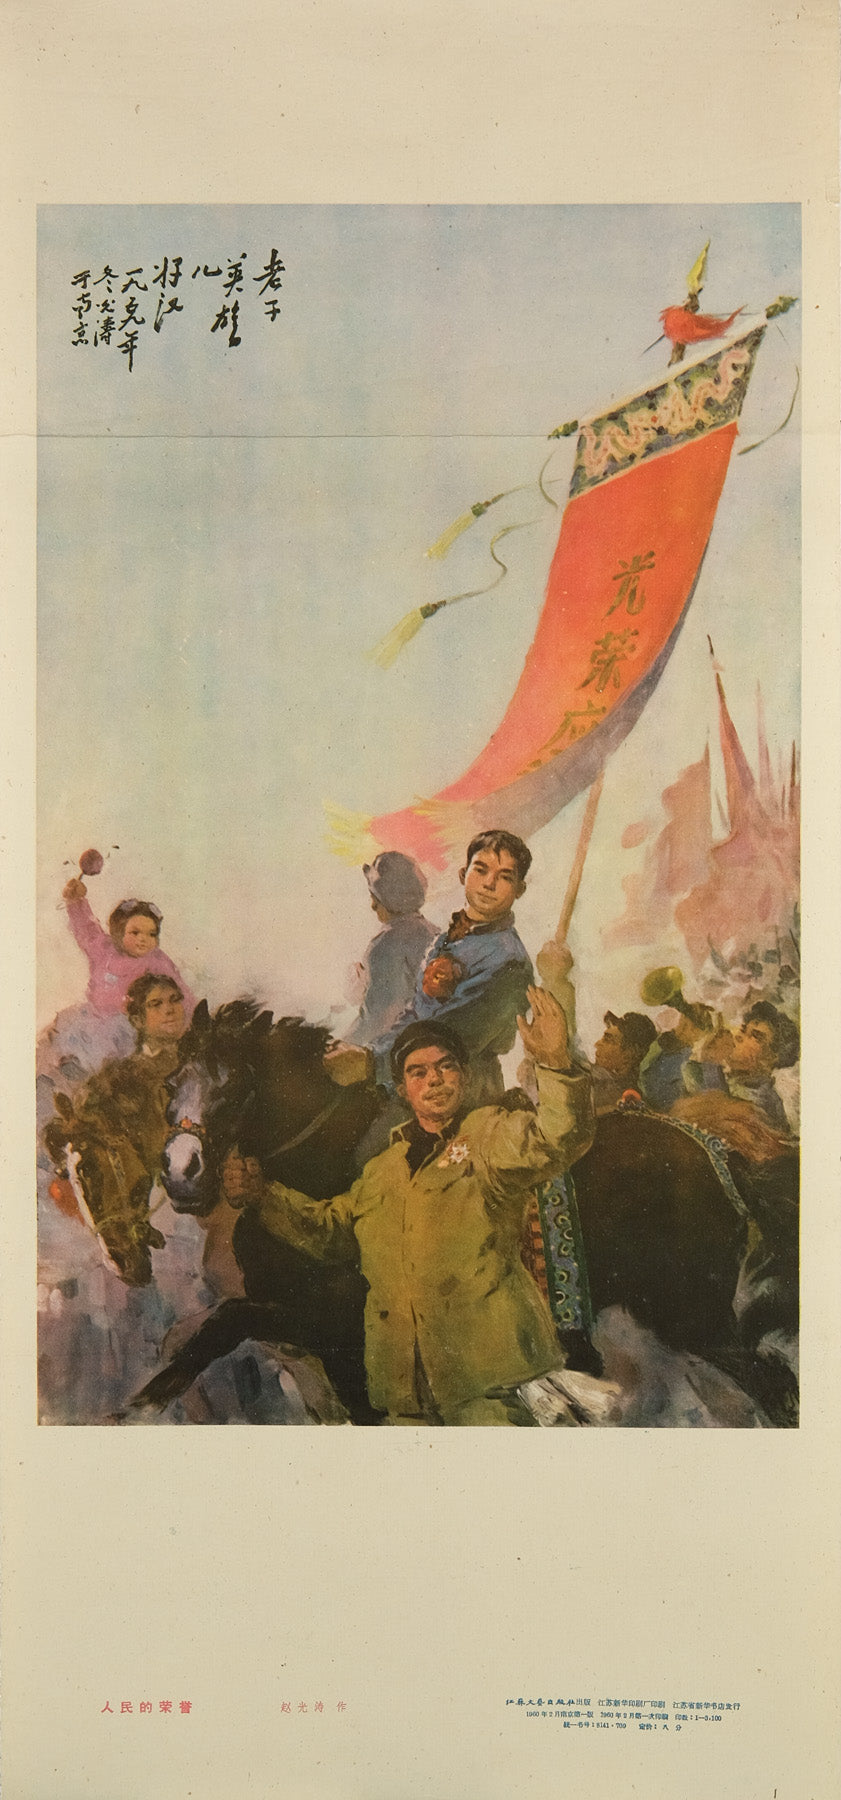 original vintage 1960 Chinese communist propaganda poster The glory of the people by Zhao Guangtao